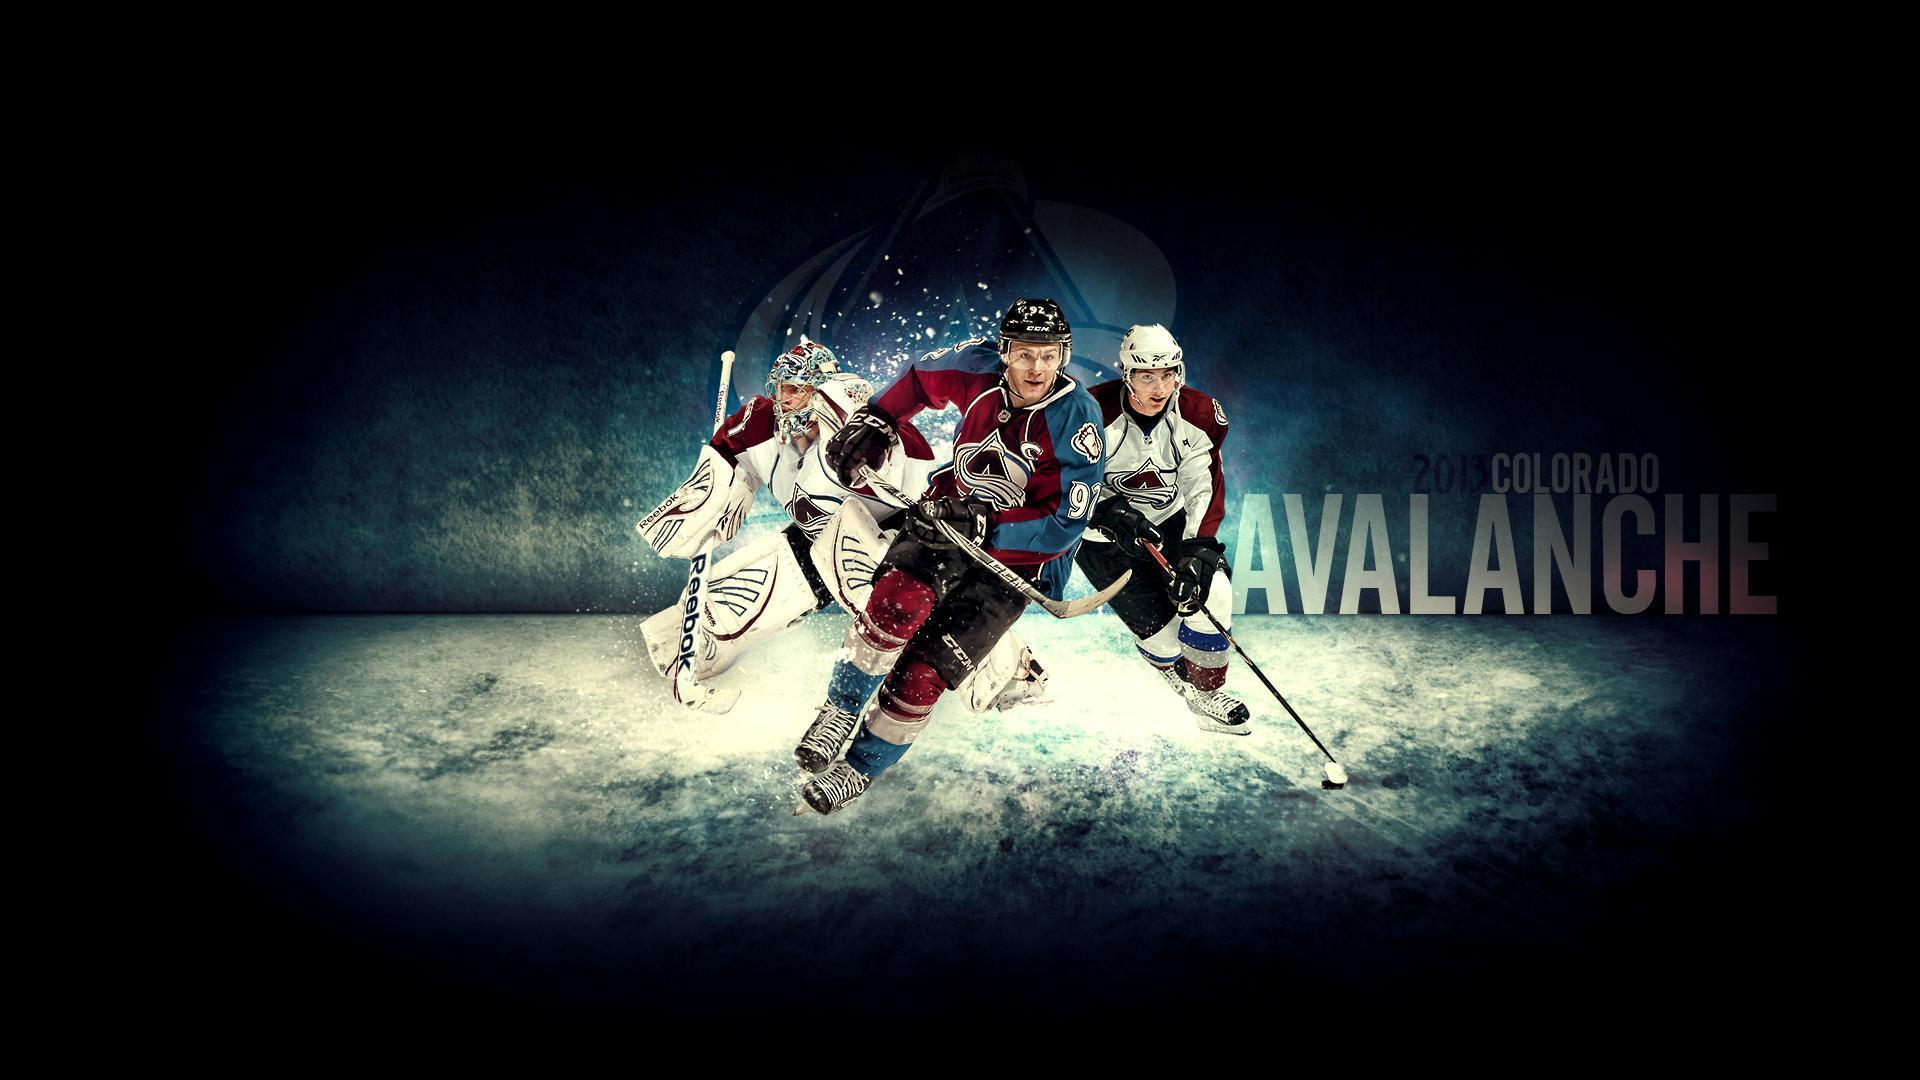 Nhl 18 wallpapers wallpaper cave - Nhl hockey wallpapers ...